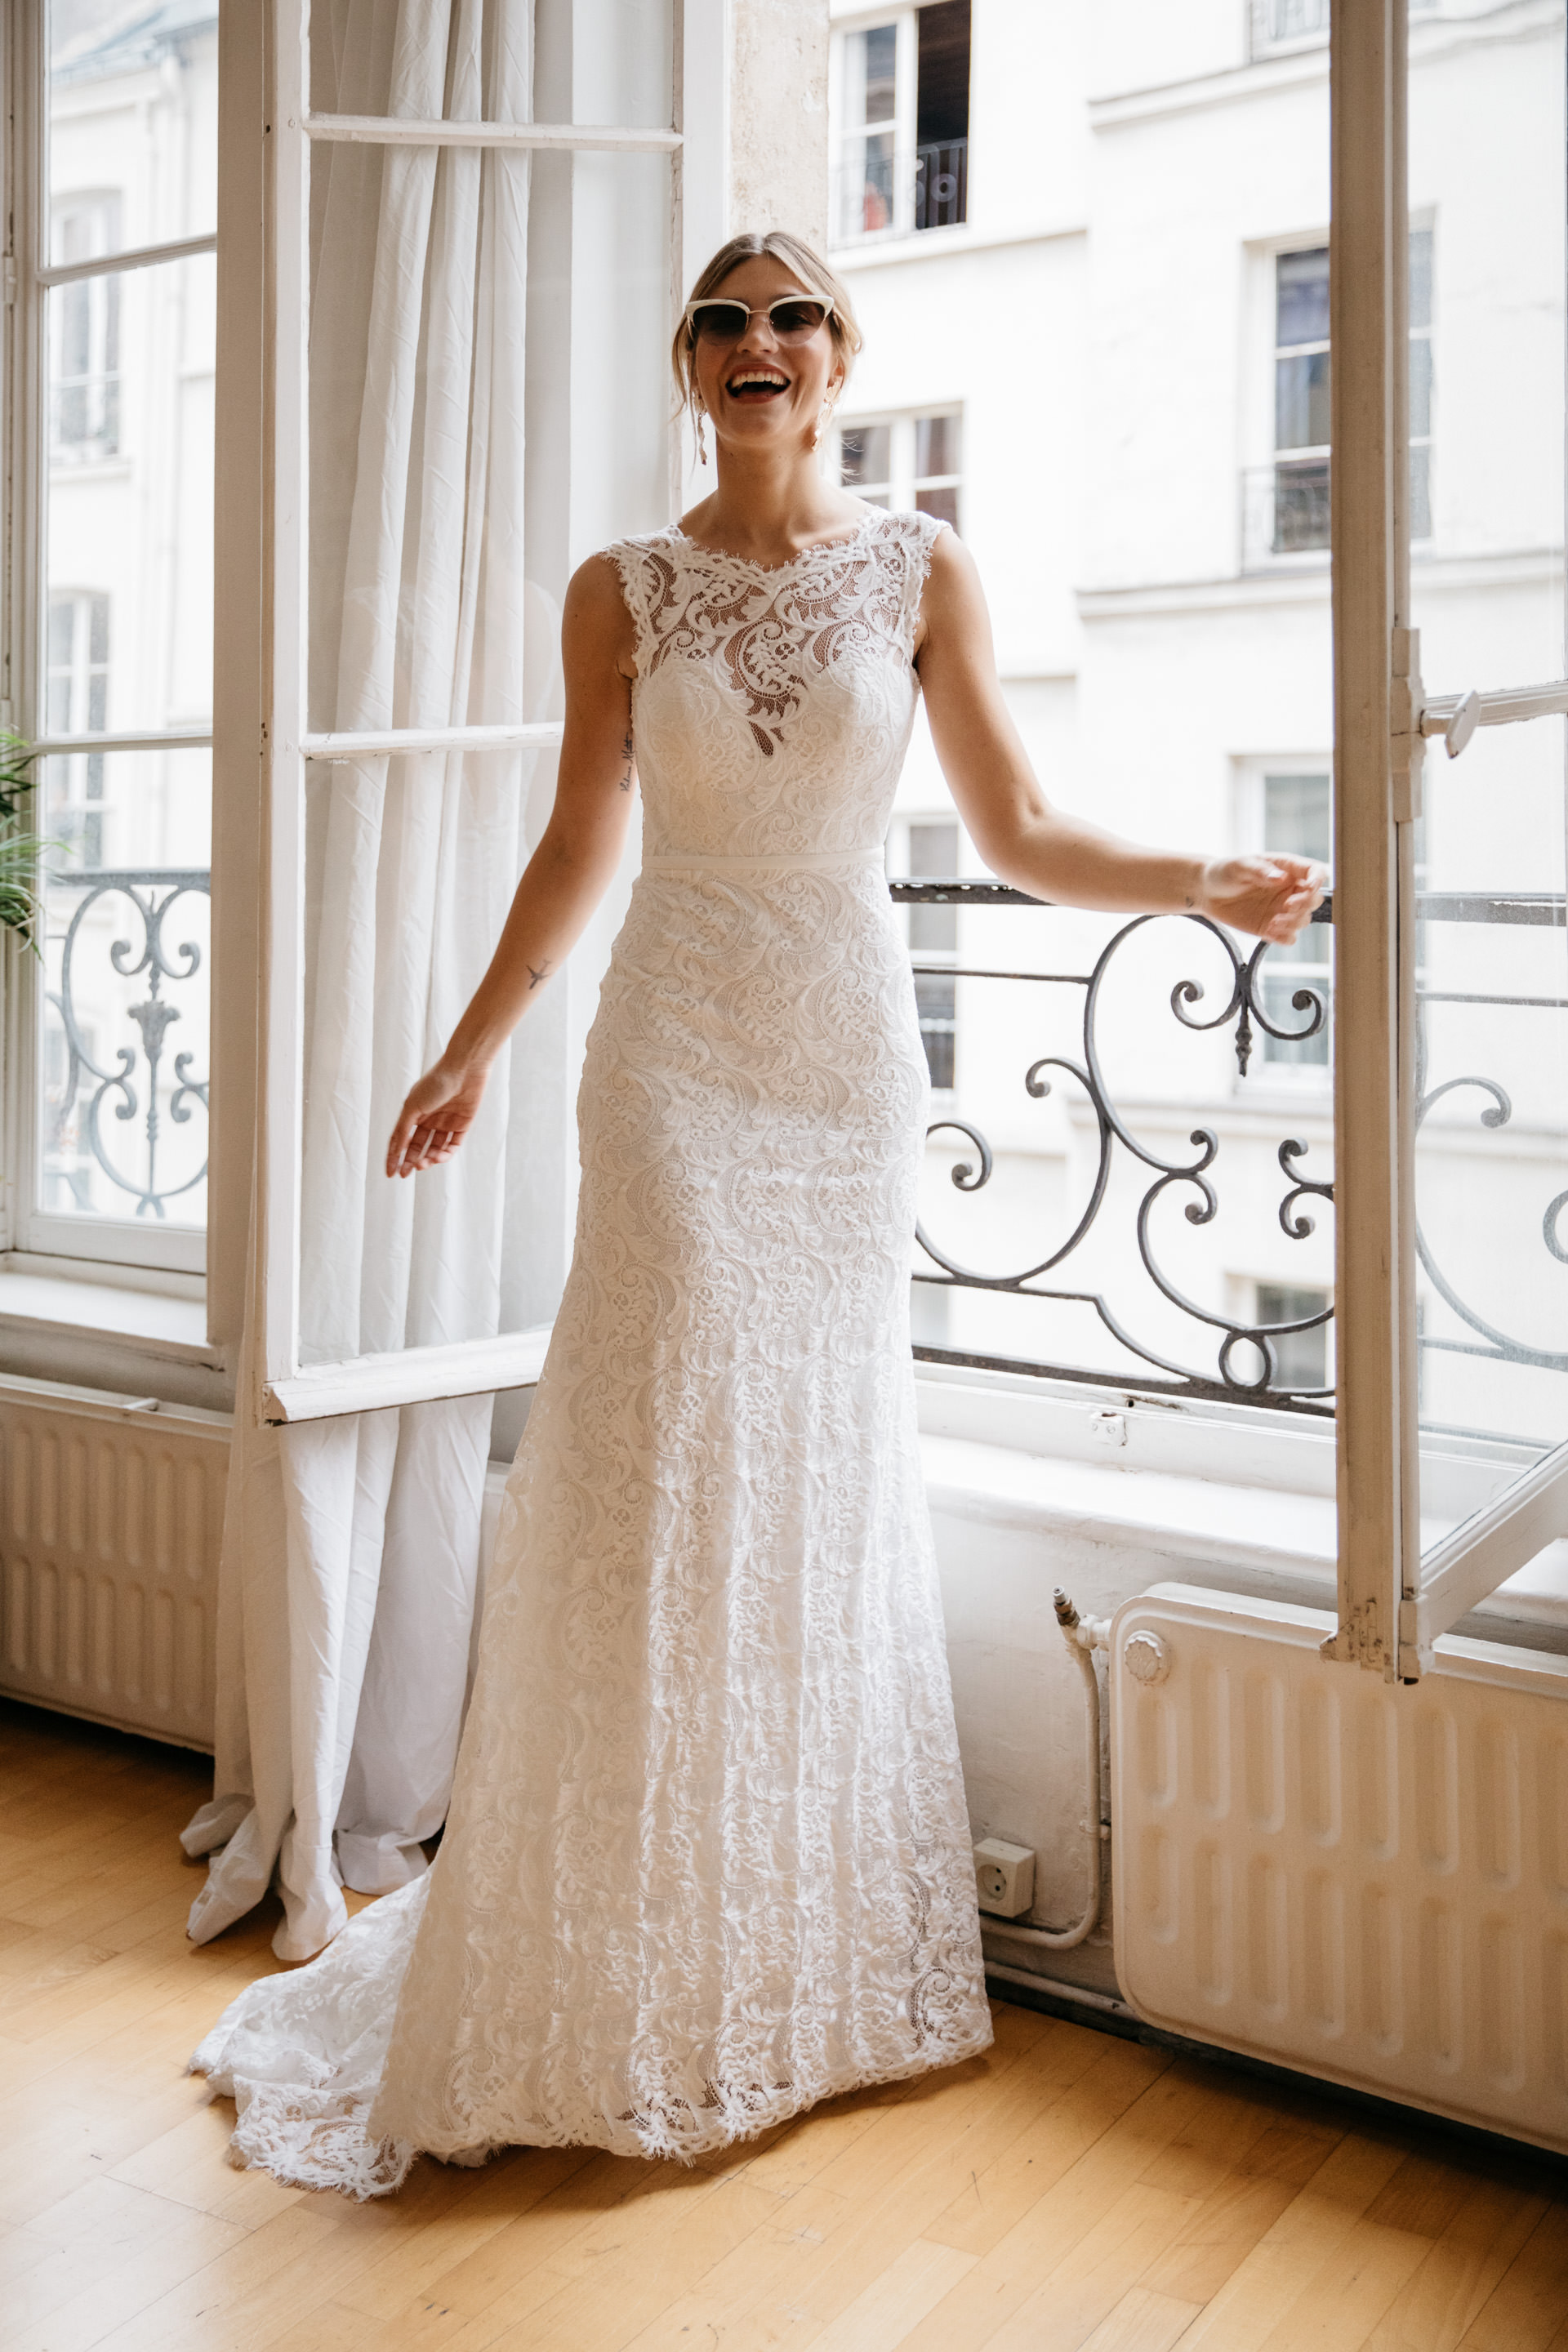 DAISY Brides Parisian Editorial with creative direction by ENGAGED CREATIVE